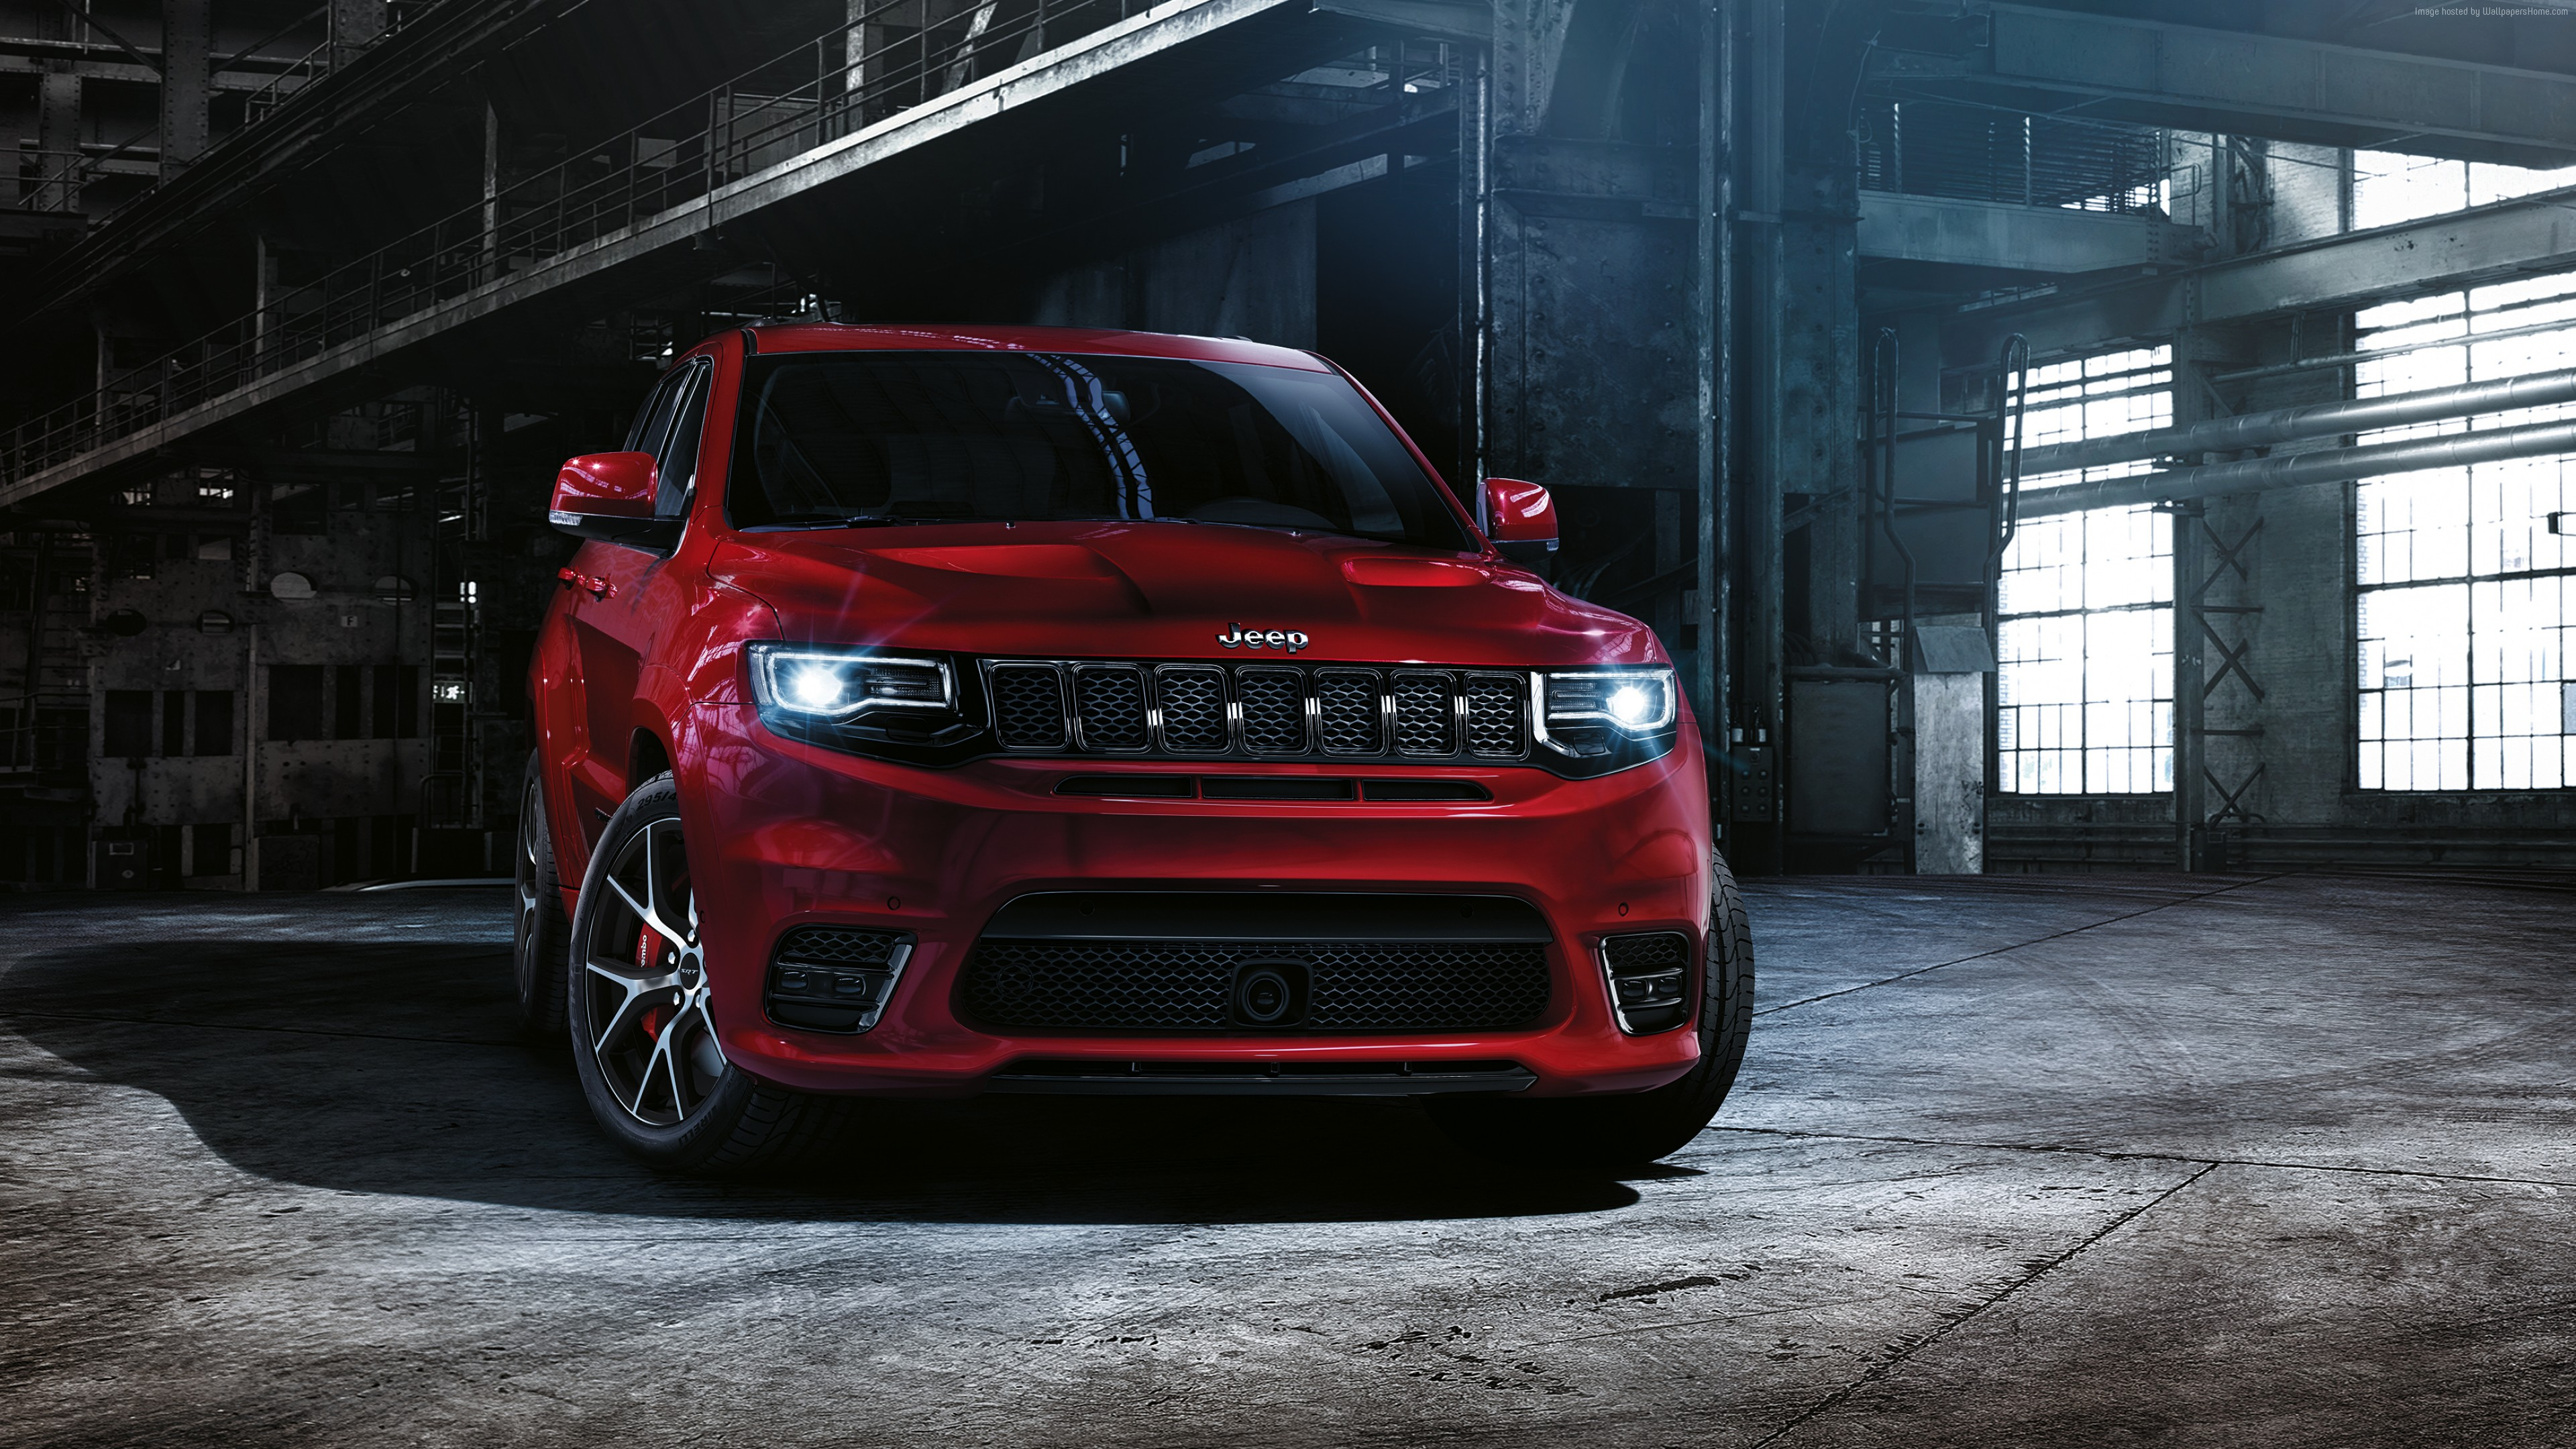 2016 jeep grand cherokee srt 1539104834 - 2016 Jeep Grand Cherokee SRT - jeep wallpapers, jeep grand cherokee wallpapers, hd-wallpapers, cars wallpapers, 4k-wallpapers, 2016 cars wallpapers